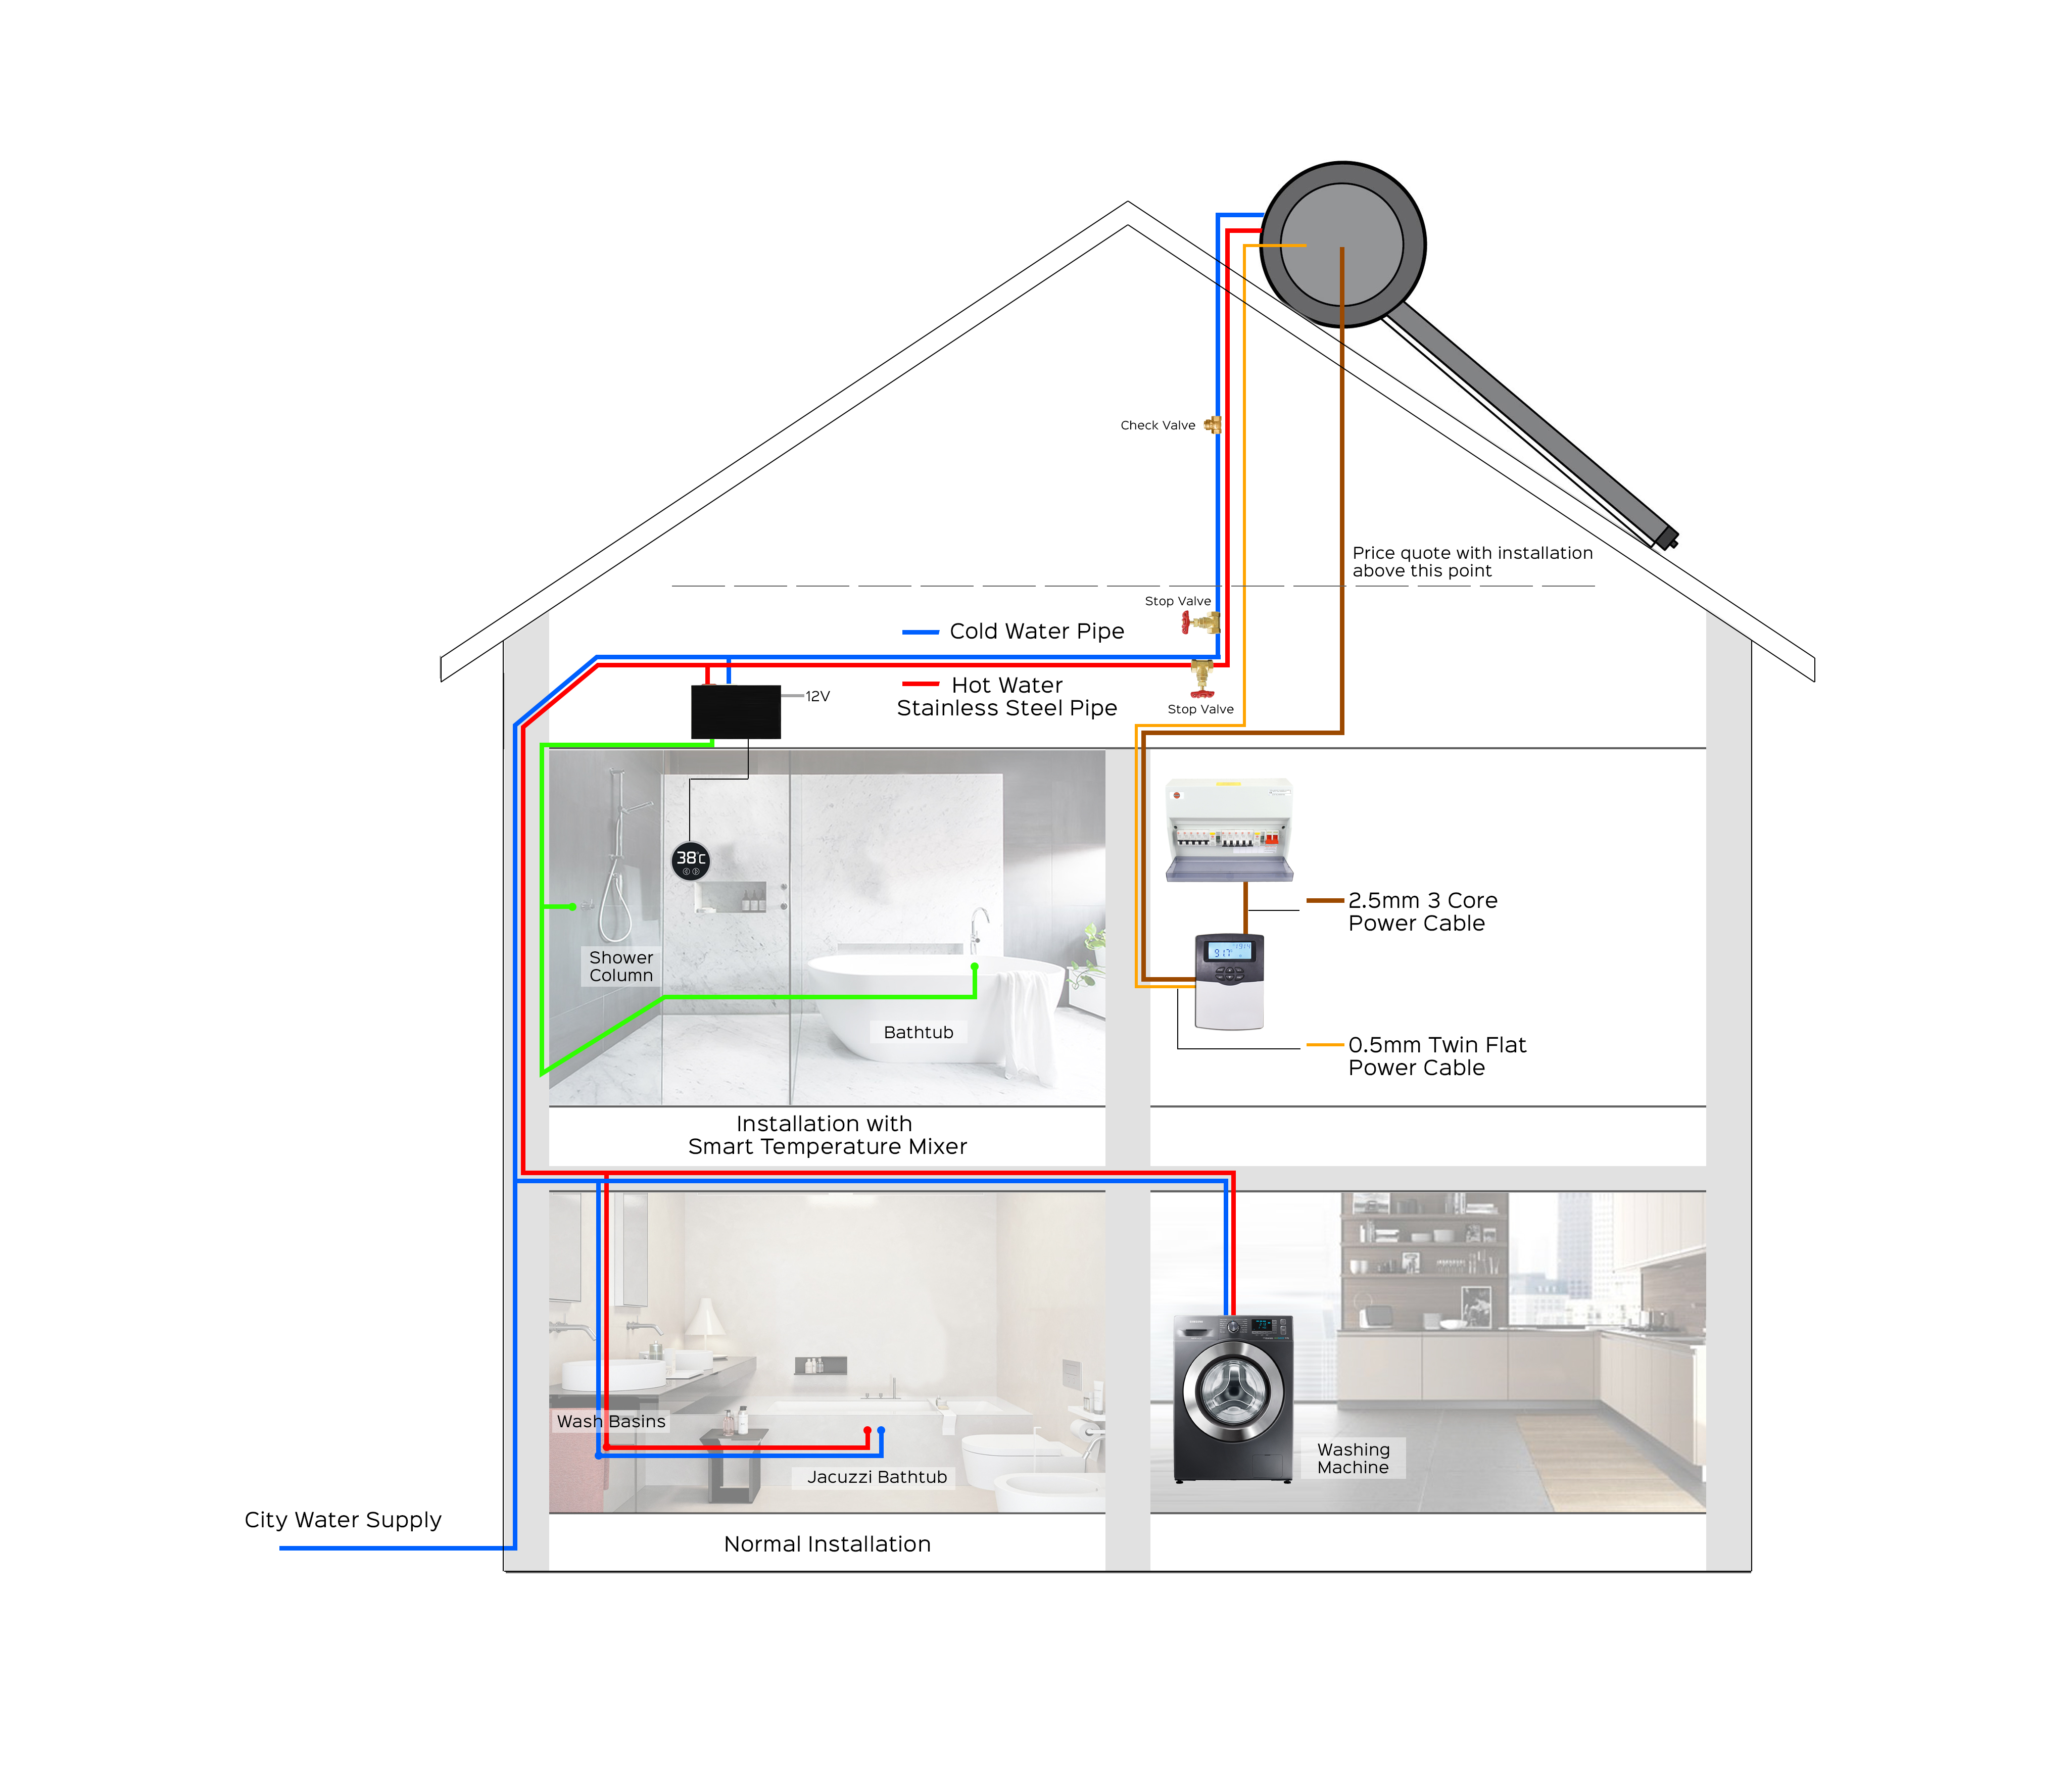 Smart Solar Water Heater Ahd Home And Cctv Alarm Diagram Free Collection Of Pictures The Optional Upgrade